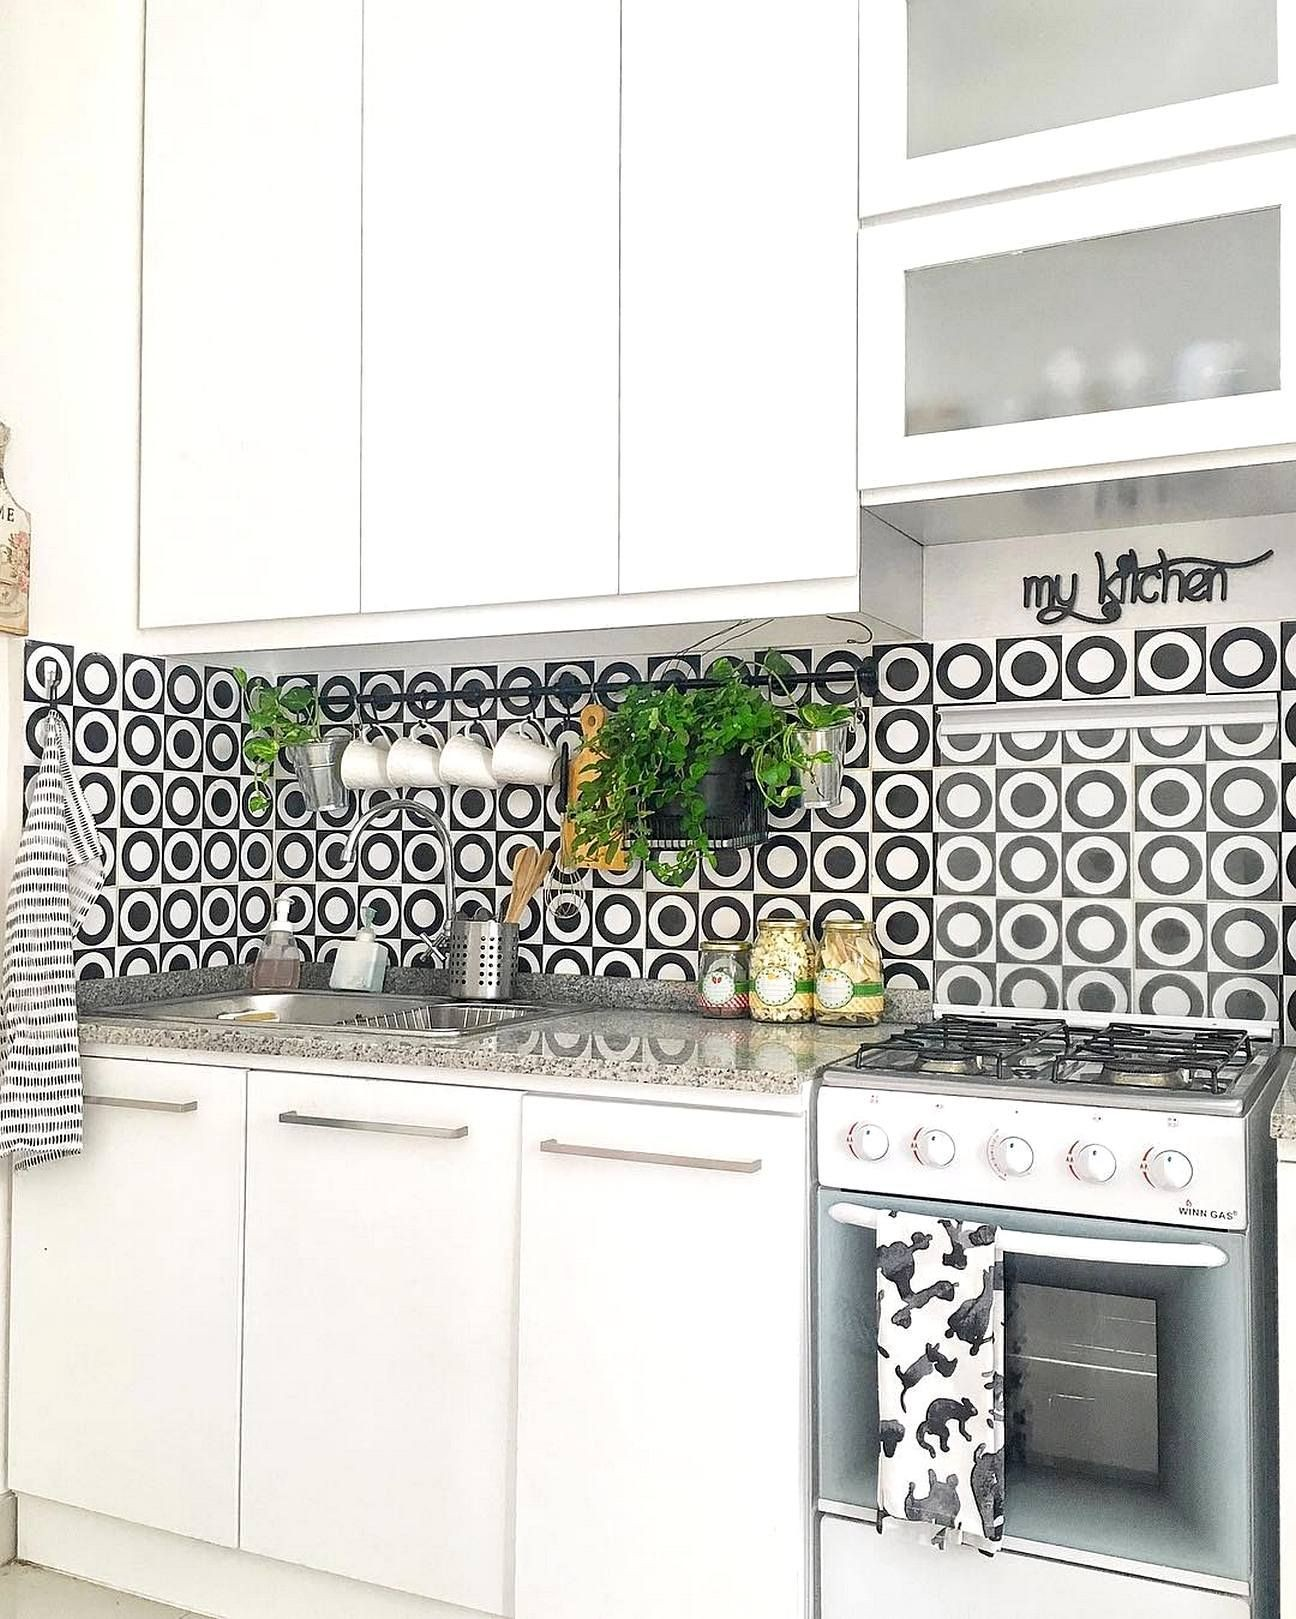 Model Motif Keramik Dapur Kitchen Sets Kitchen Layout Kitchen Storage Kitchen Design